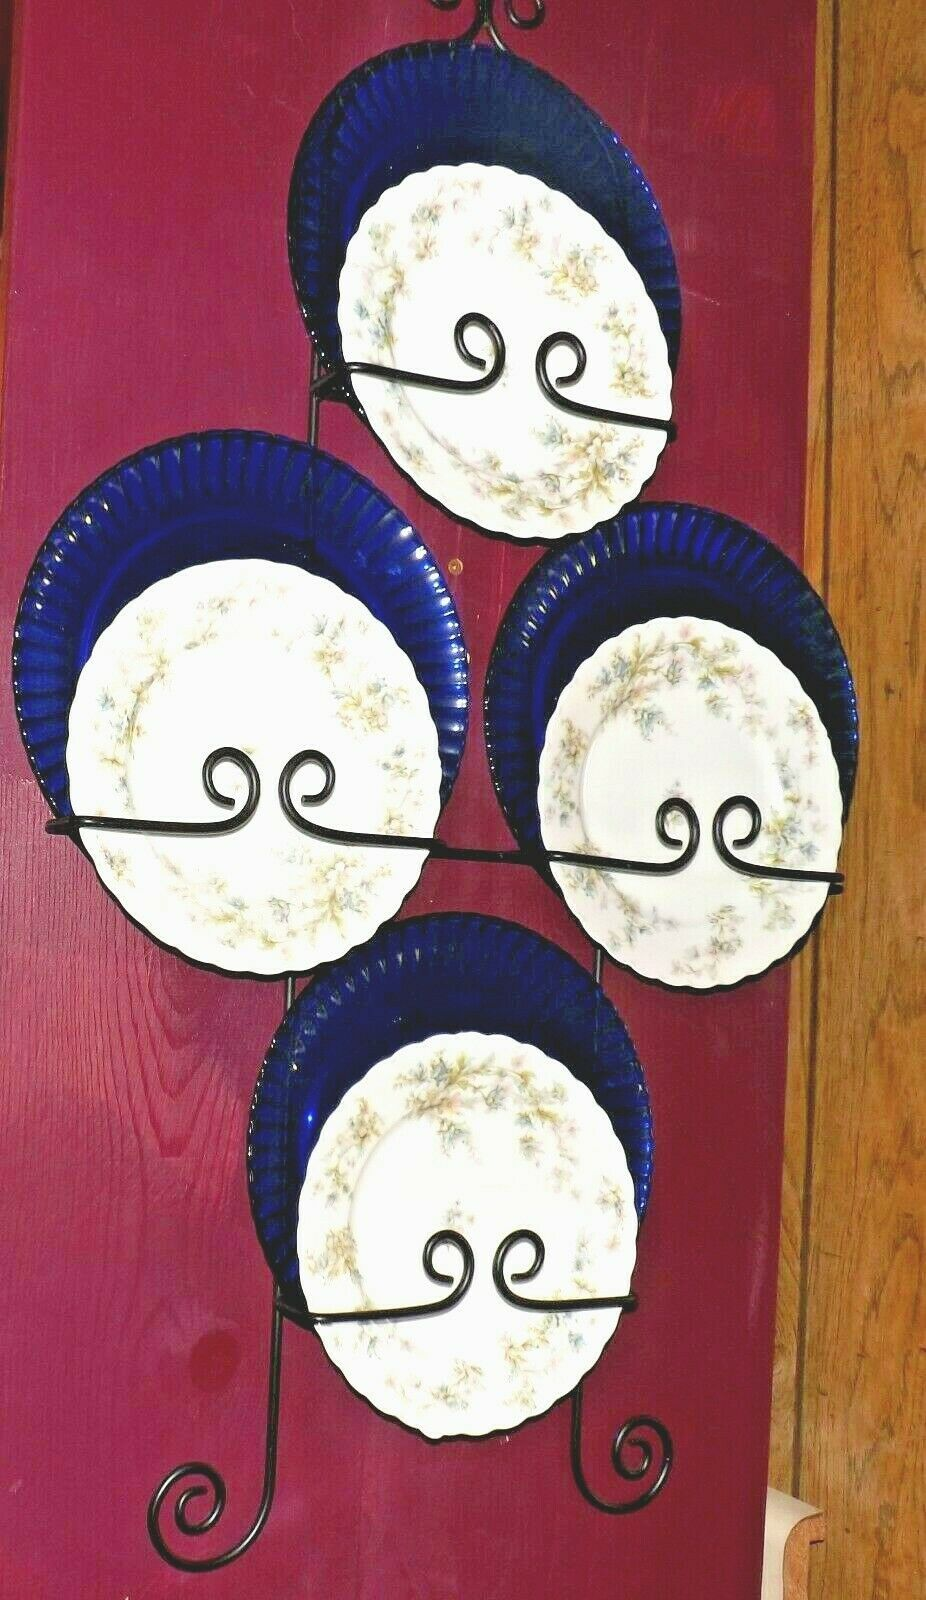 Haviland Limoges plate set with blue chargers and plate hanger AA19-1626  Vintag